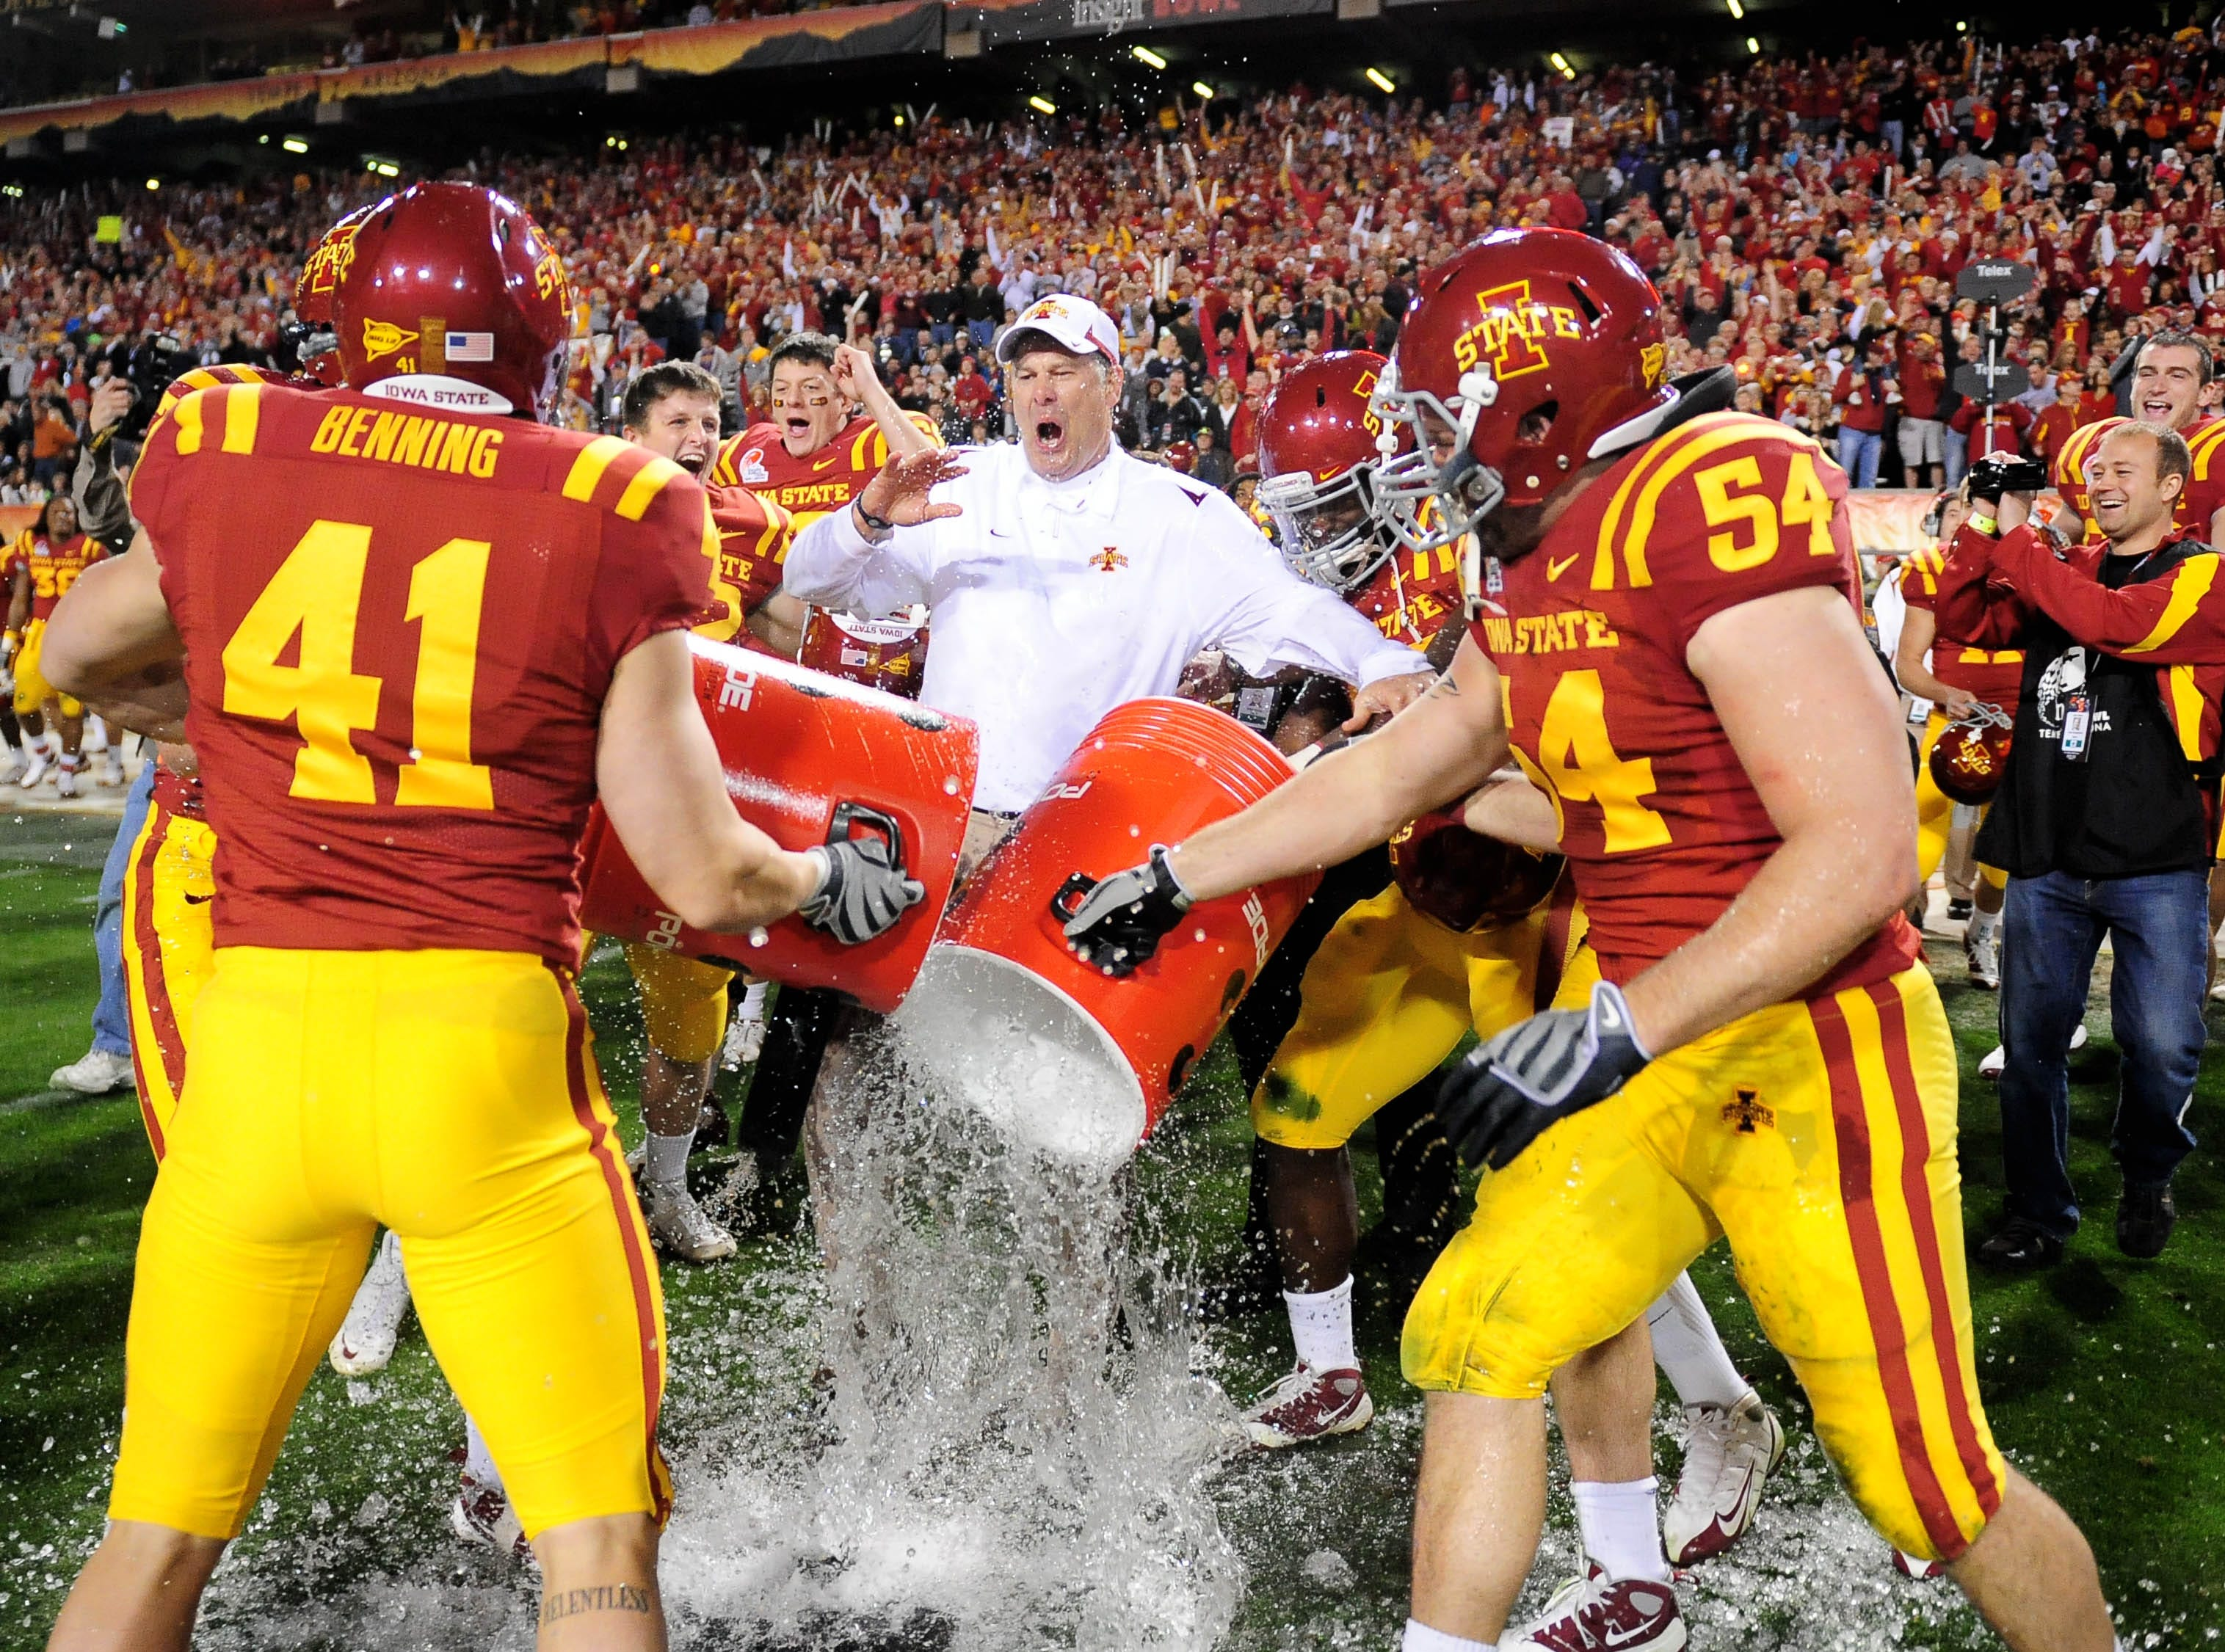 Dec 31, 2009; Tempe, AZ, USA; Iowa State Cyclones head coach Paul Rhoads is doused with water following the game against the Minnesota Golden Gophers in the 2009 Insight Bowl at Sun Devil Stadium. Iowa State defeated Minnesota 14-13. Mandatory Credit: Mark J. Rebilas-USA TODAY Sports